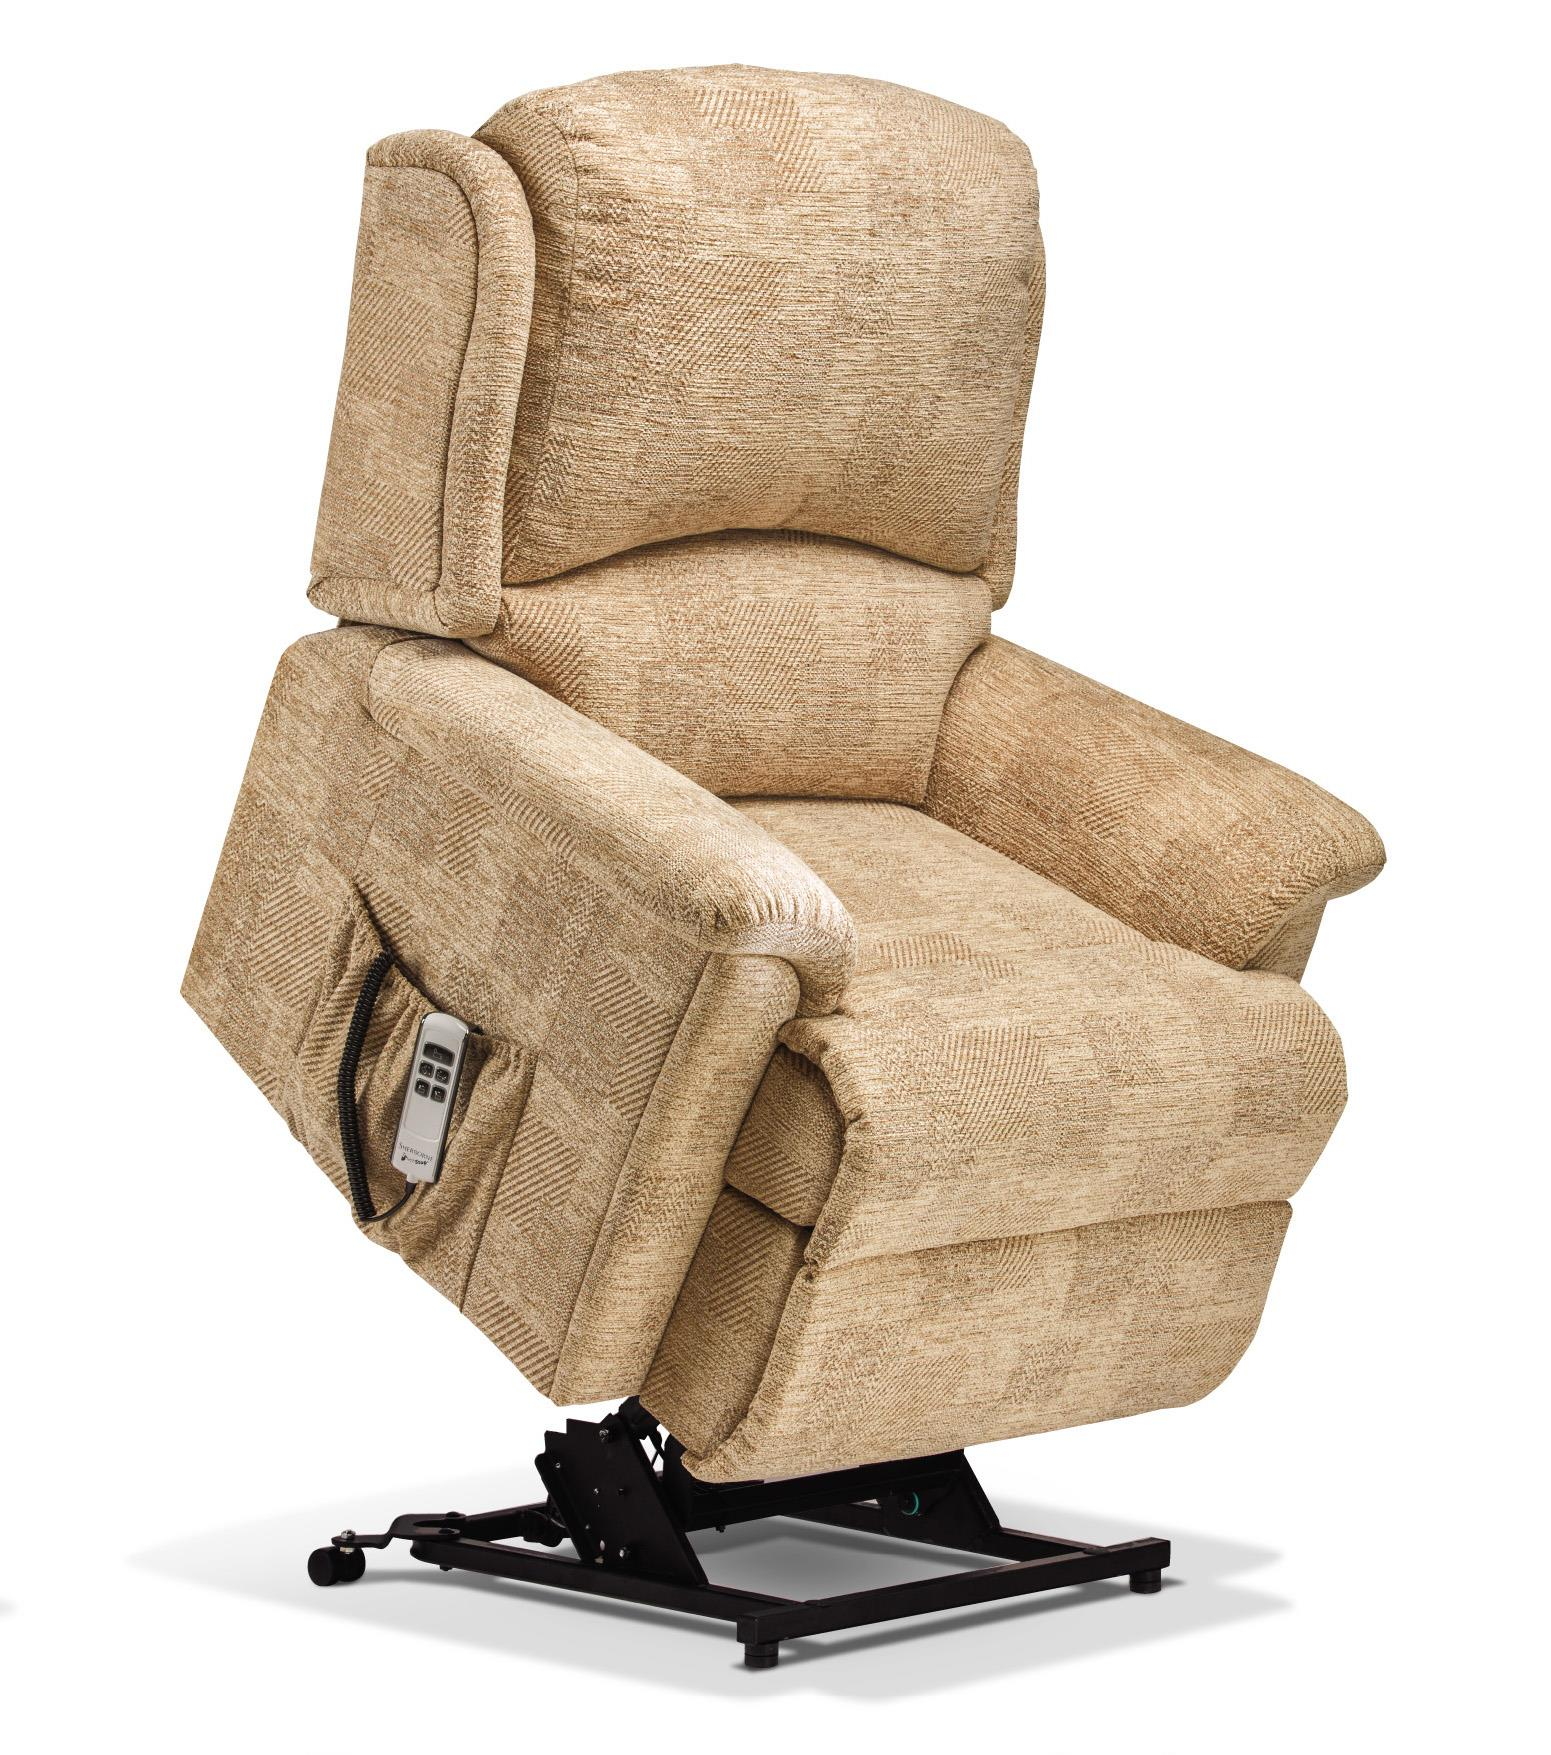 VIRGINIA - Lift & Rise Reclining Chair - by Sherborne